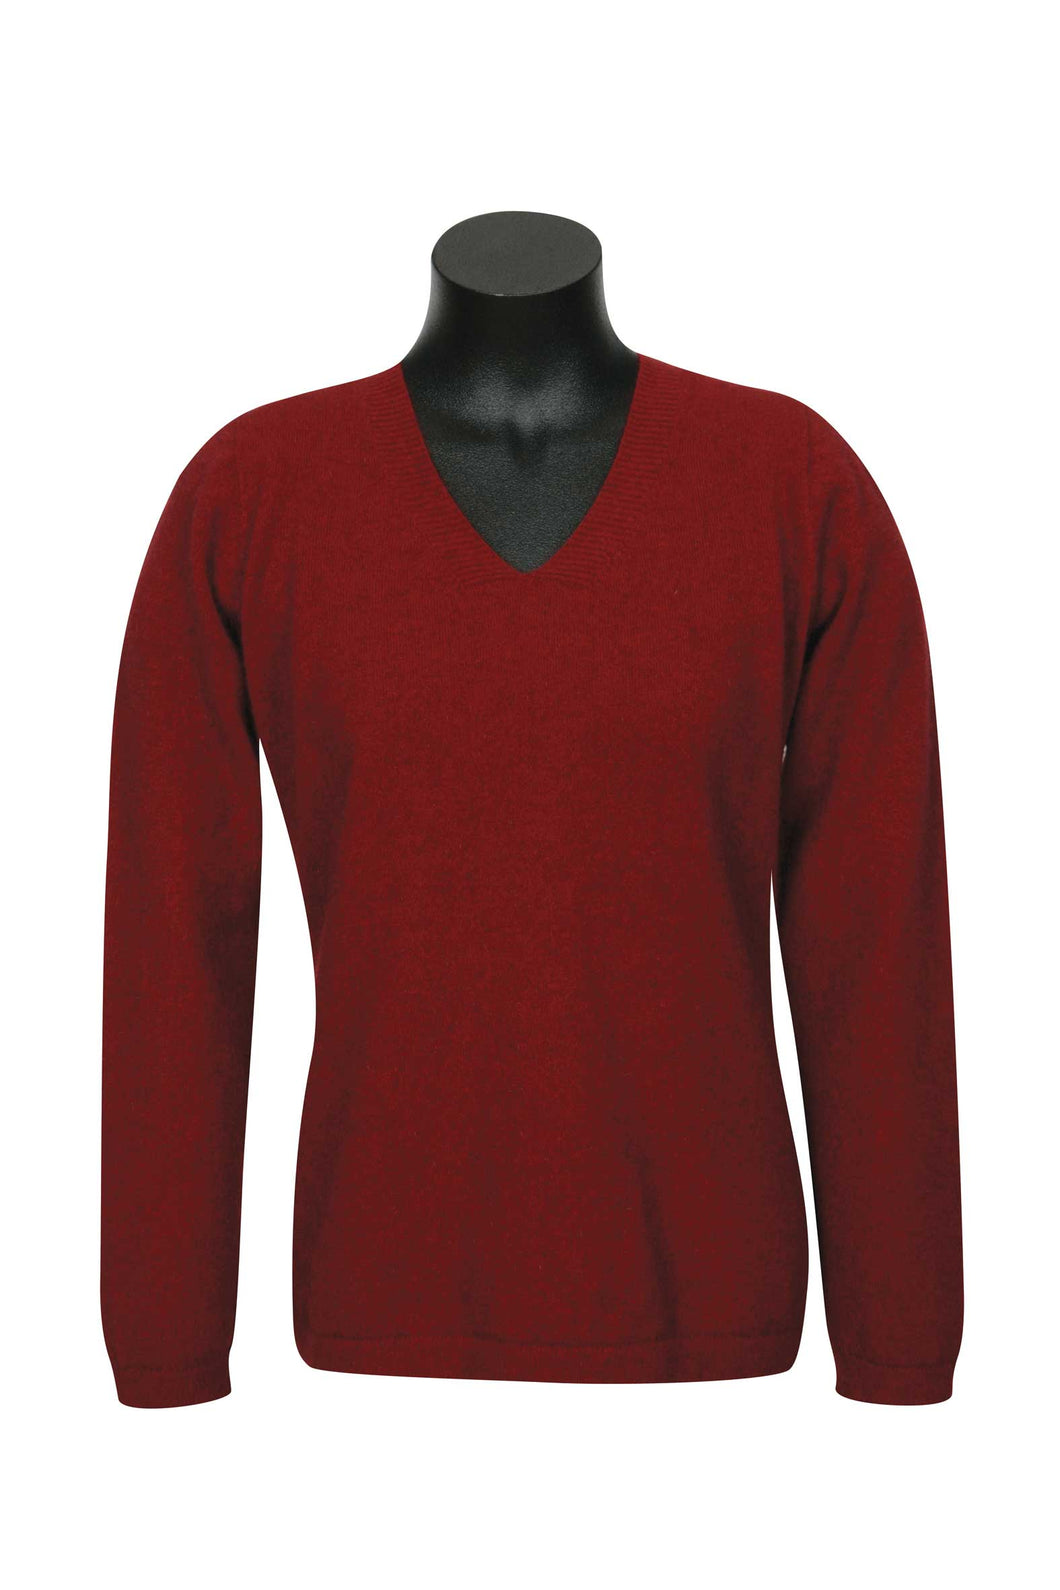 Possum Merino V Neck Plain Sweater-Native World|possum-boutique.co.nz